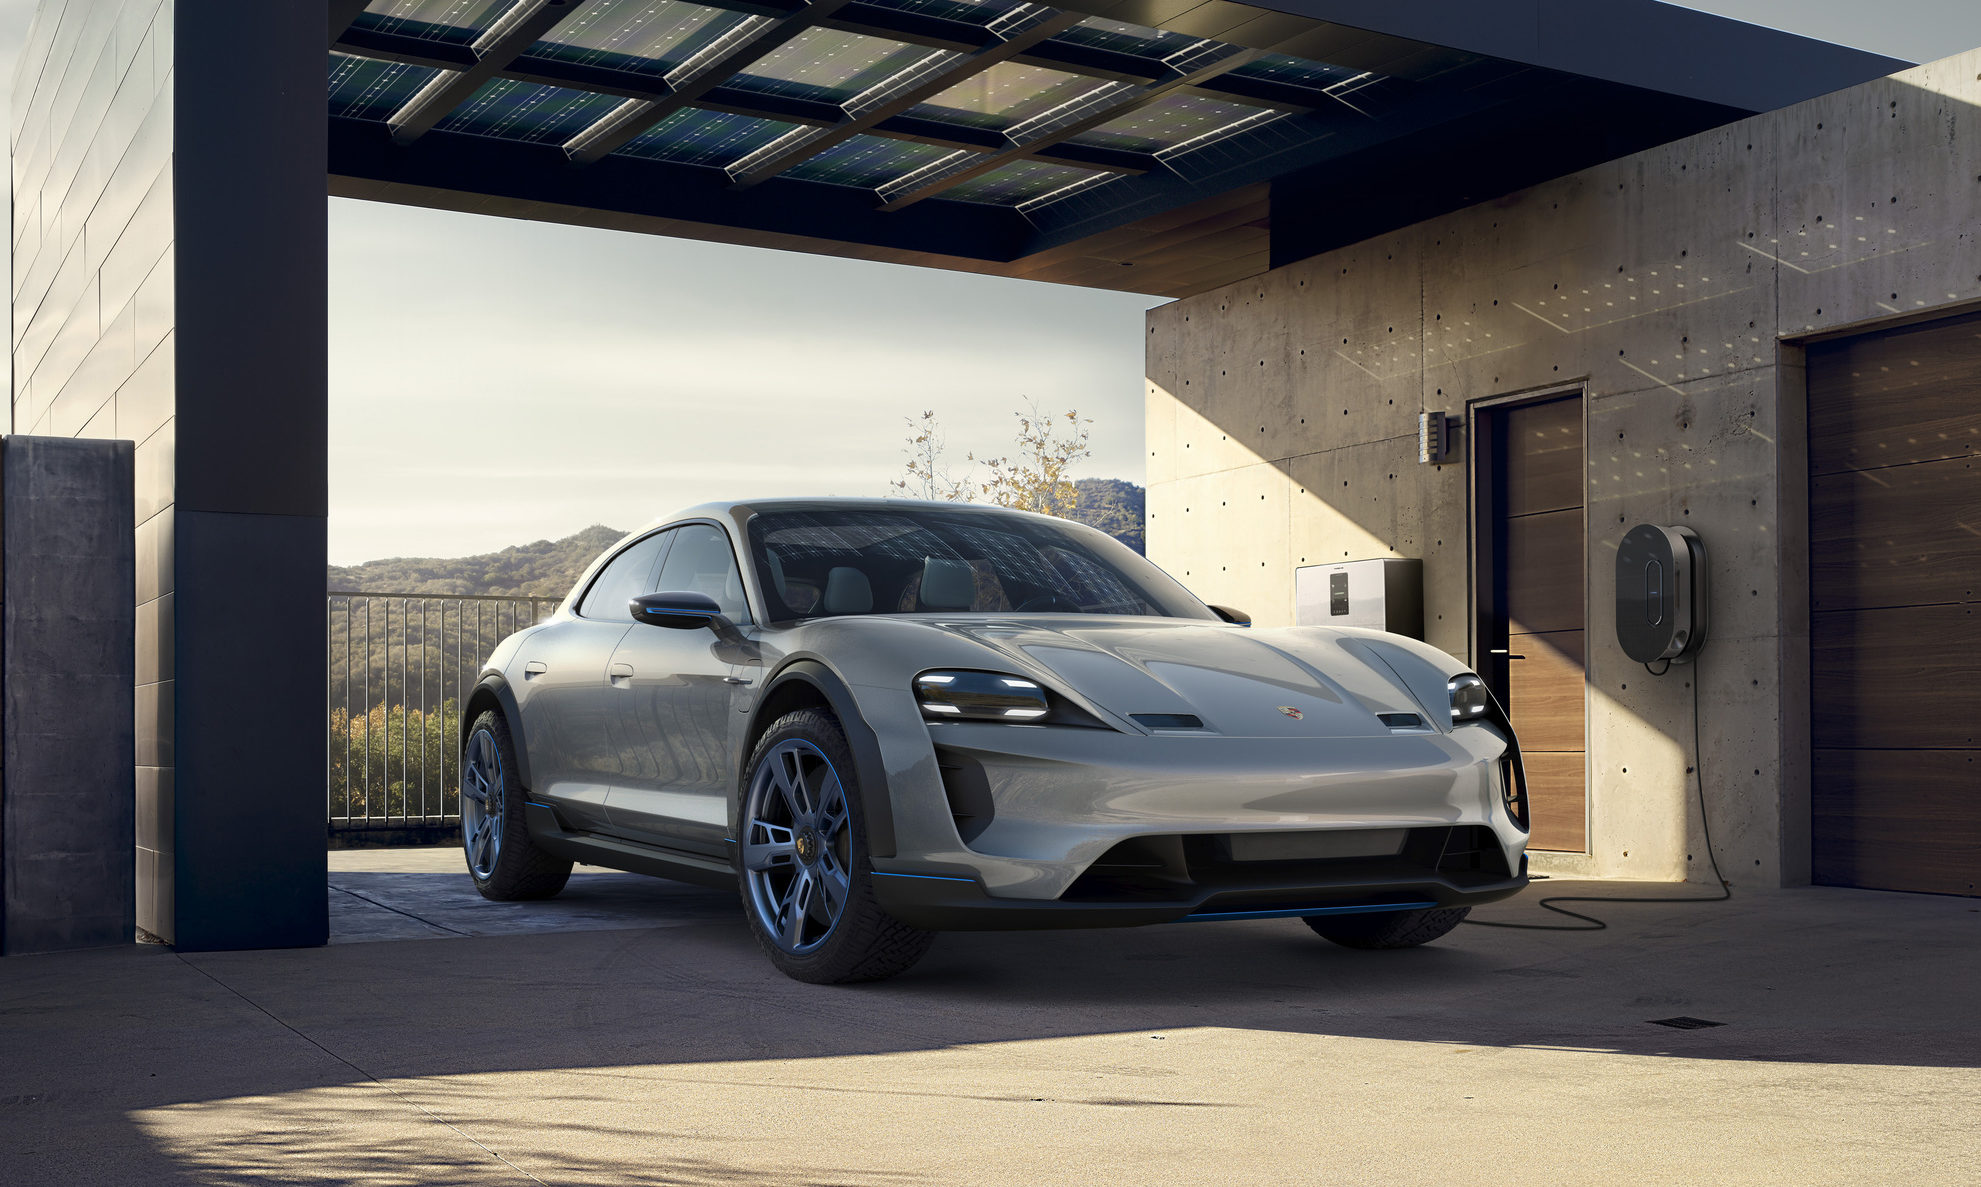 Porsche Explains Mission E Cross Turismo Design And Concept